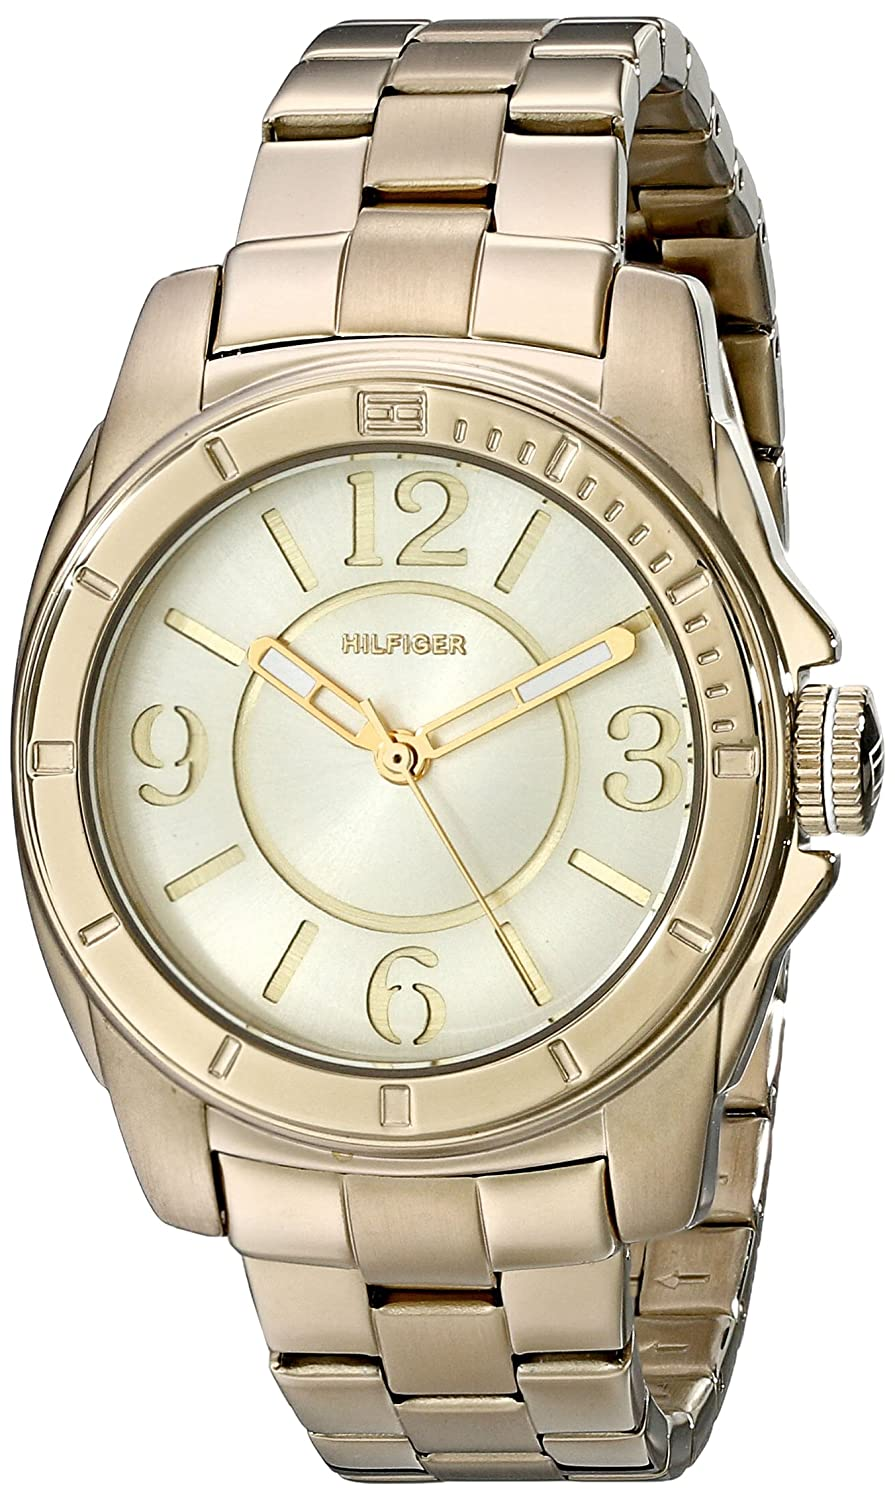 5d5460c02 Amazon.com: Tommy Hilfiger Women's 1781139 Gold-Plated Watch: Tommy Hilfiger:  Watches